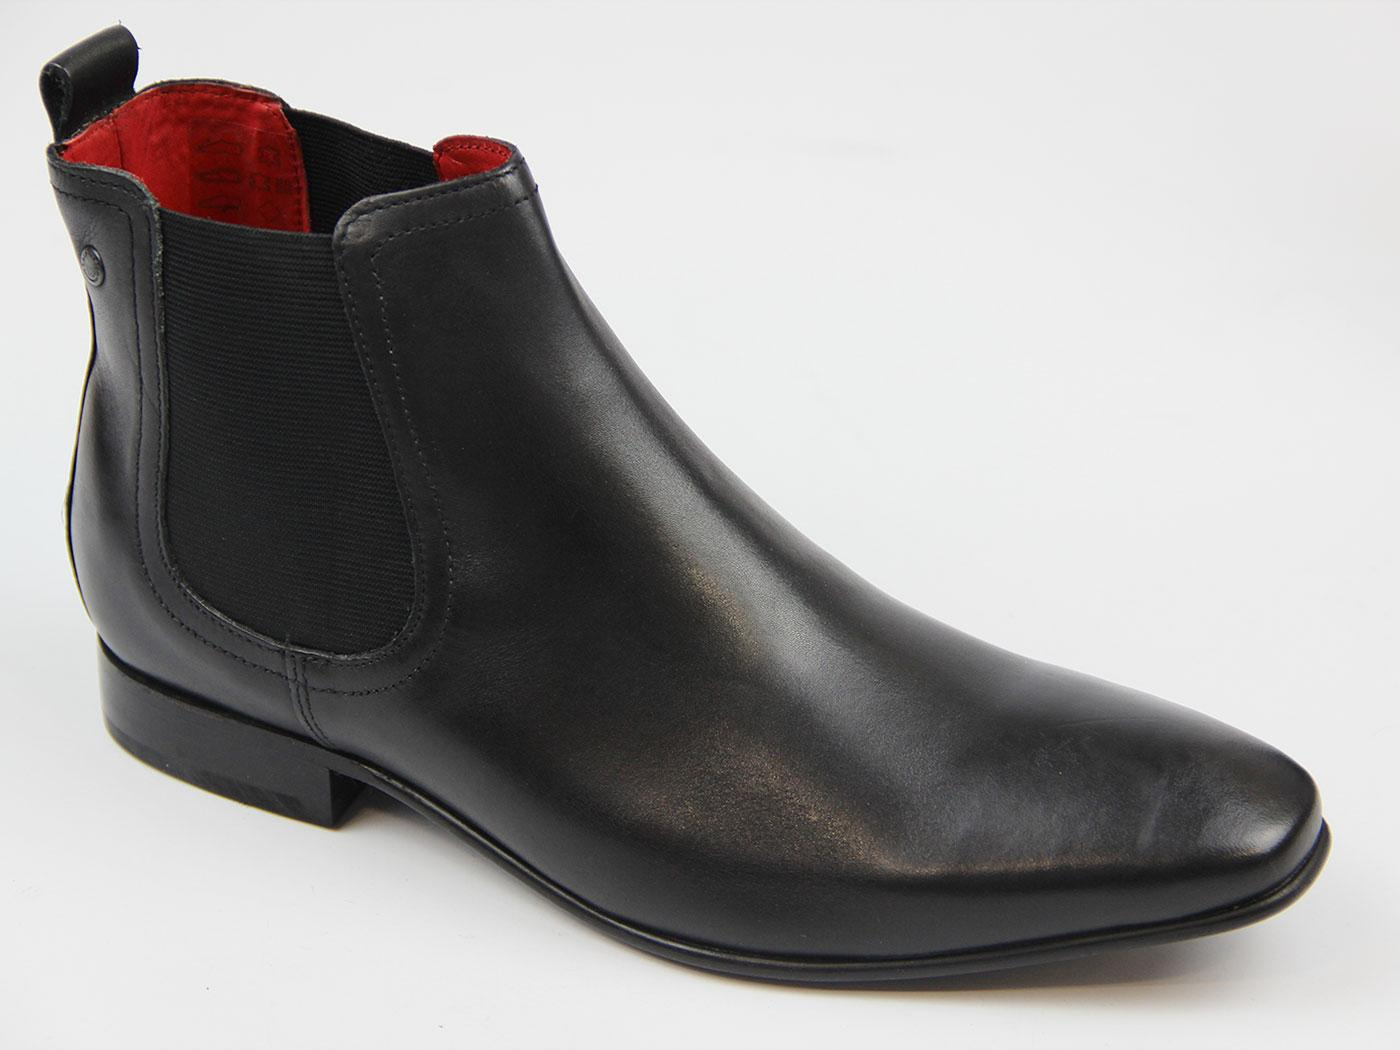 Thread BASE LONDON Mod Waxy Leather Chelsea Boots